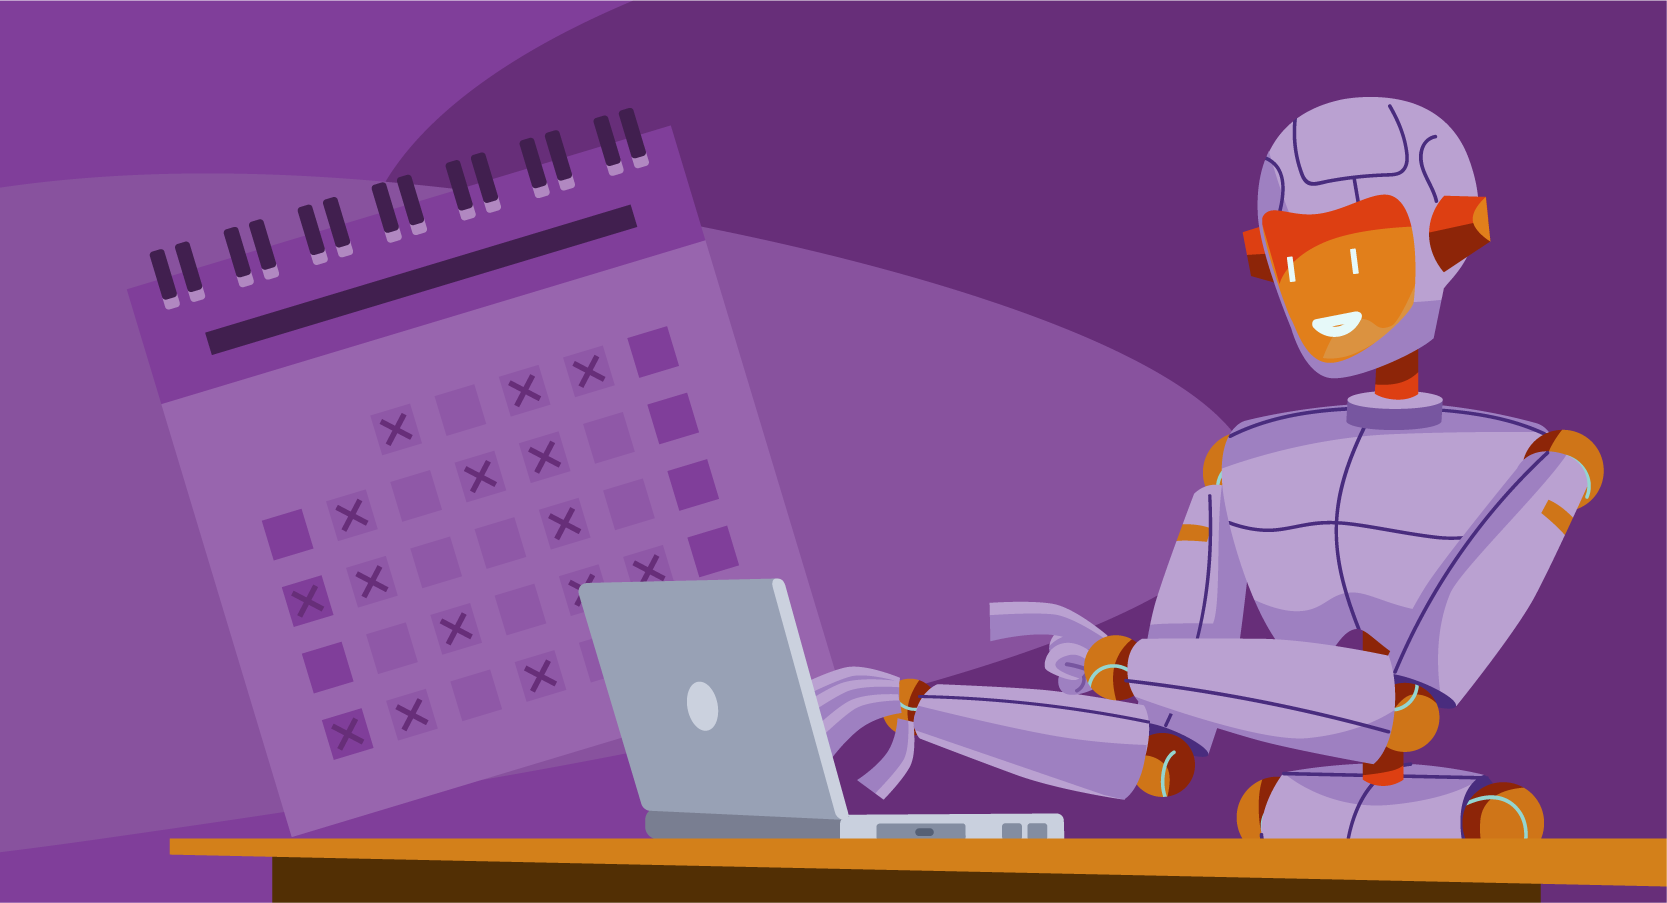 robot scheduling appointments